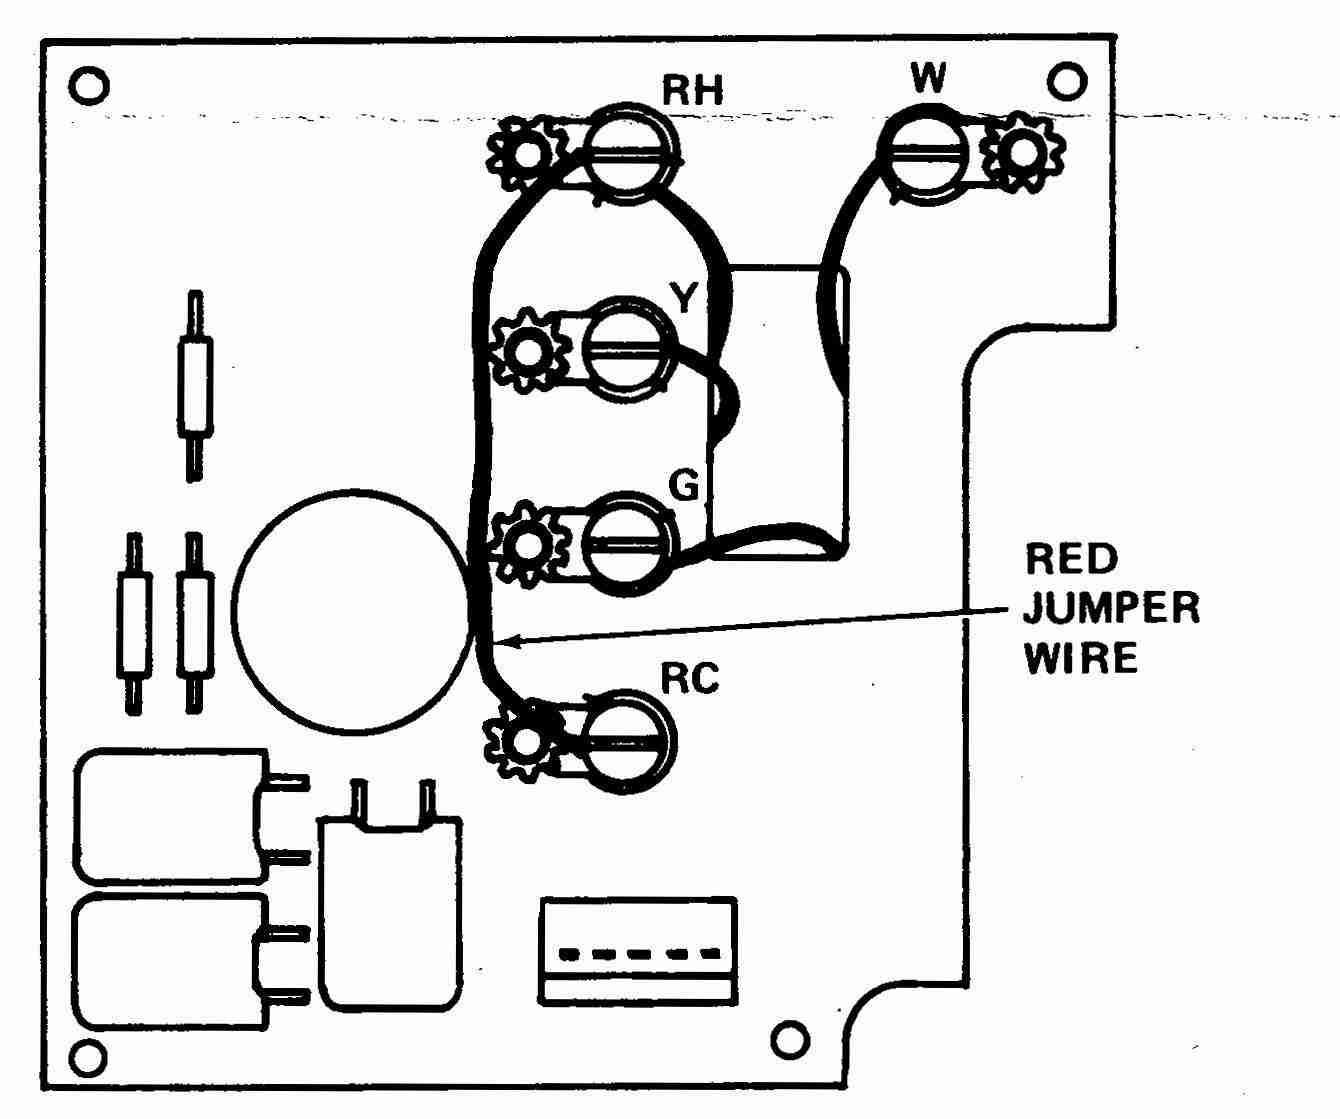 Emerson Thermostat Wiring Diagram 80 Series. White Rodgers